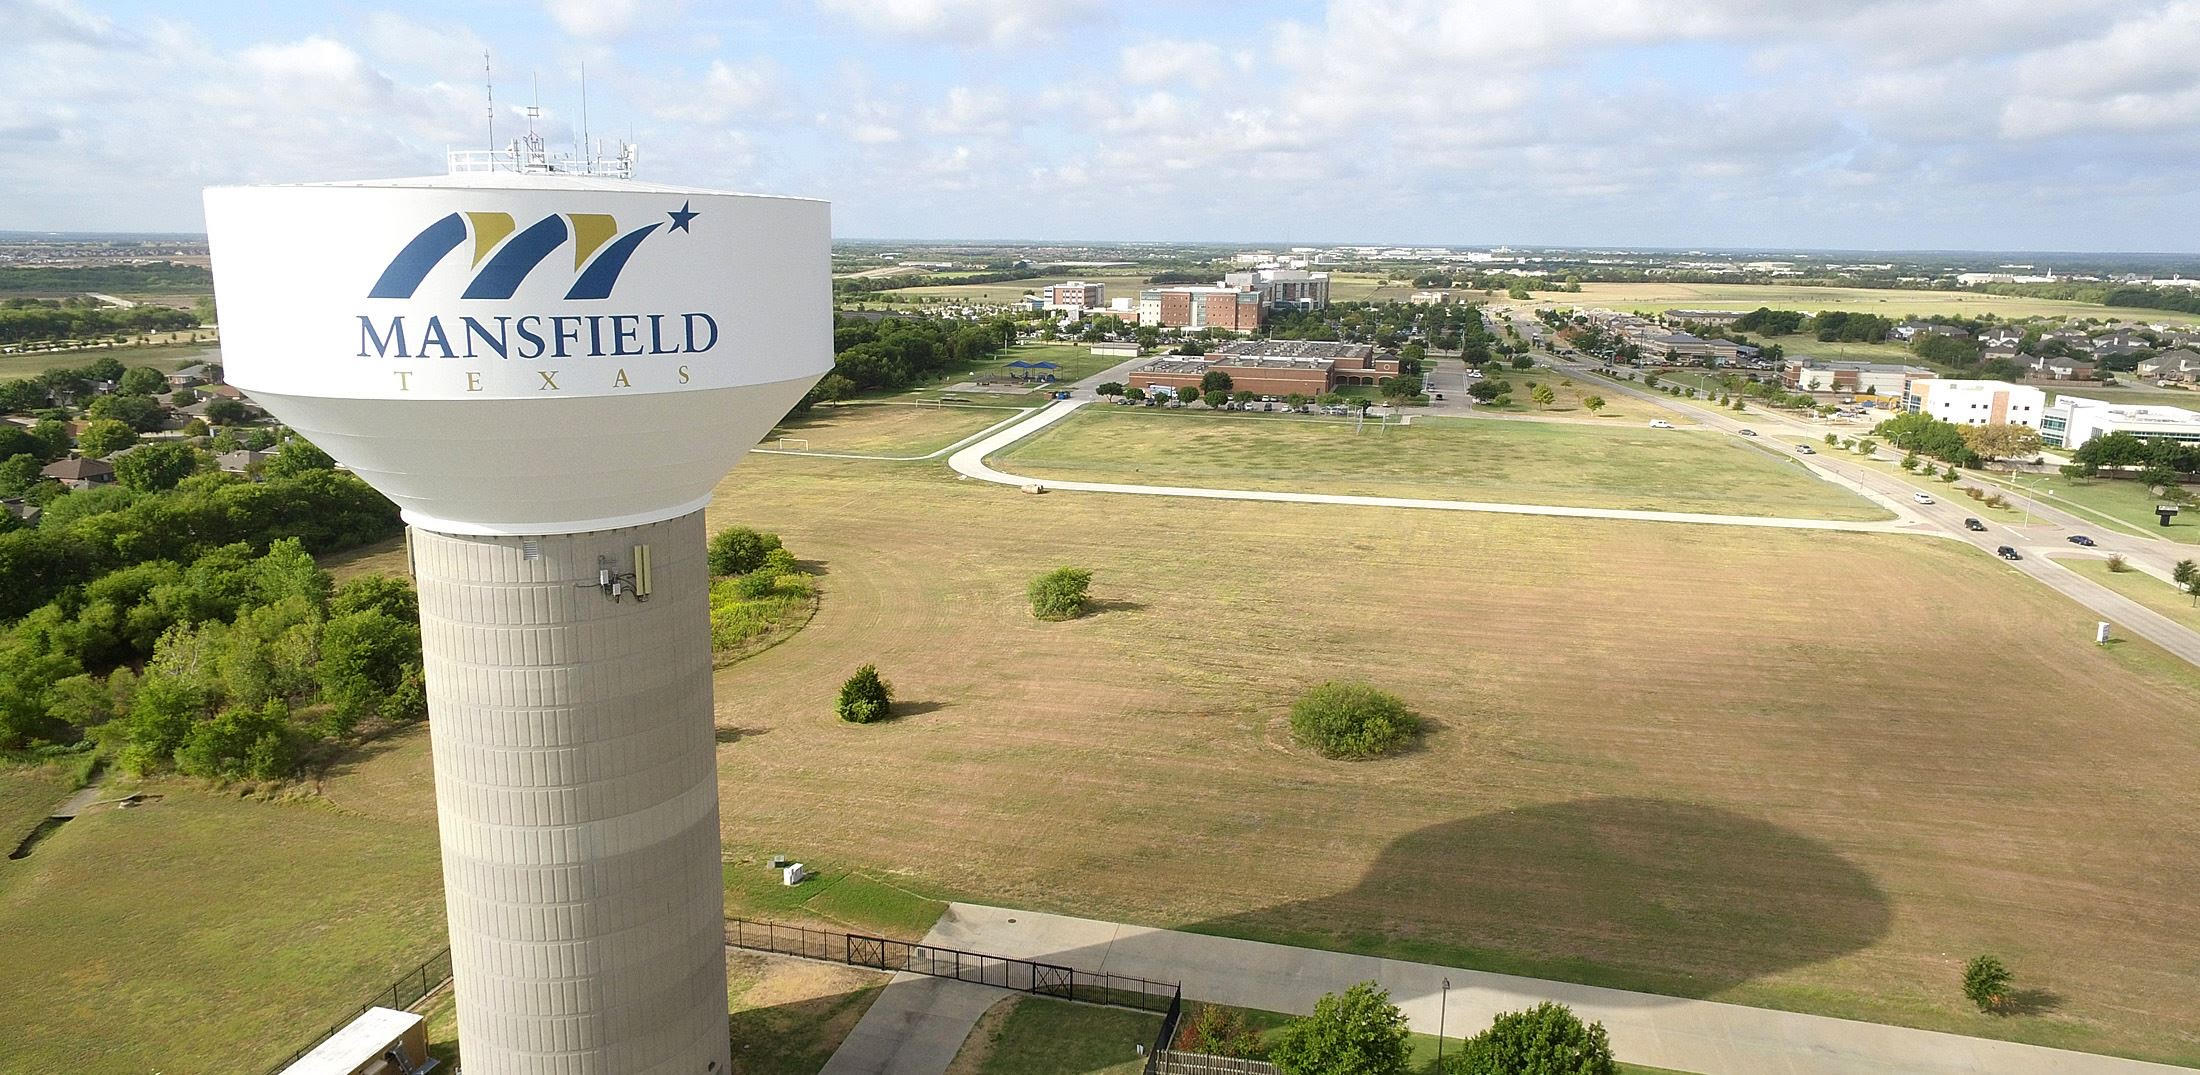 City of Mansfield TX 76063